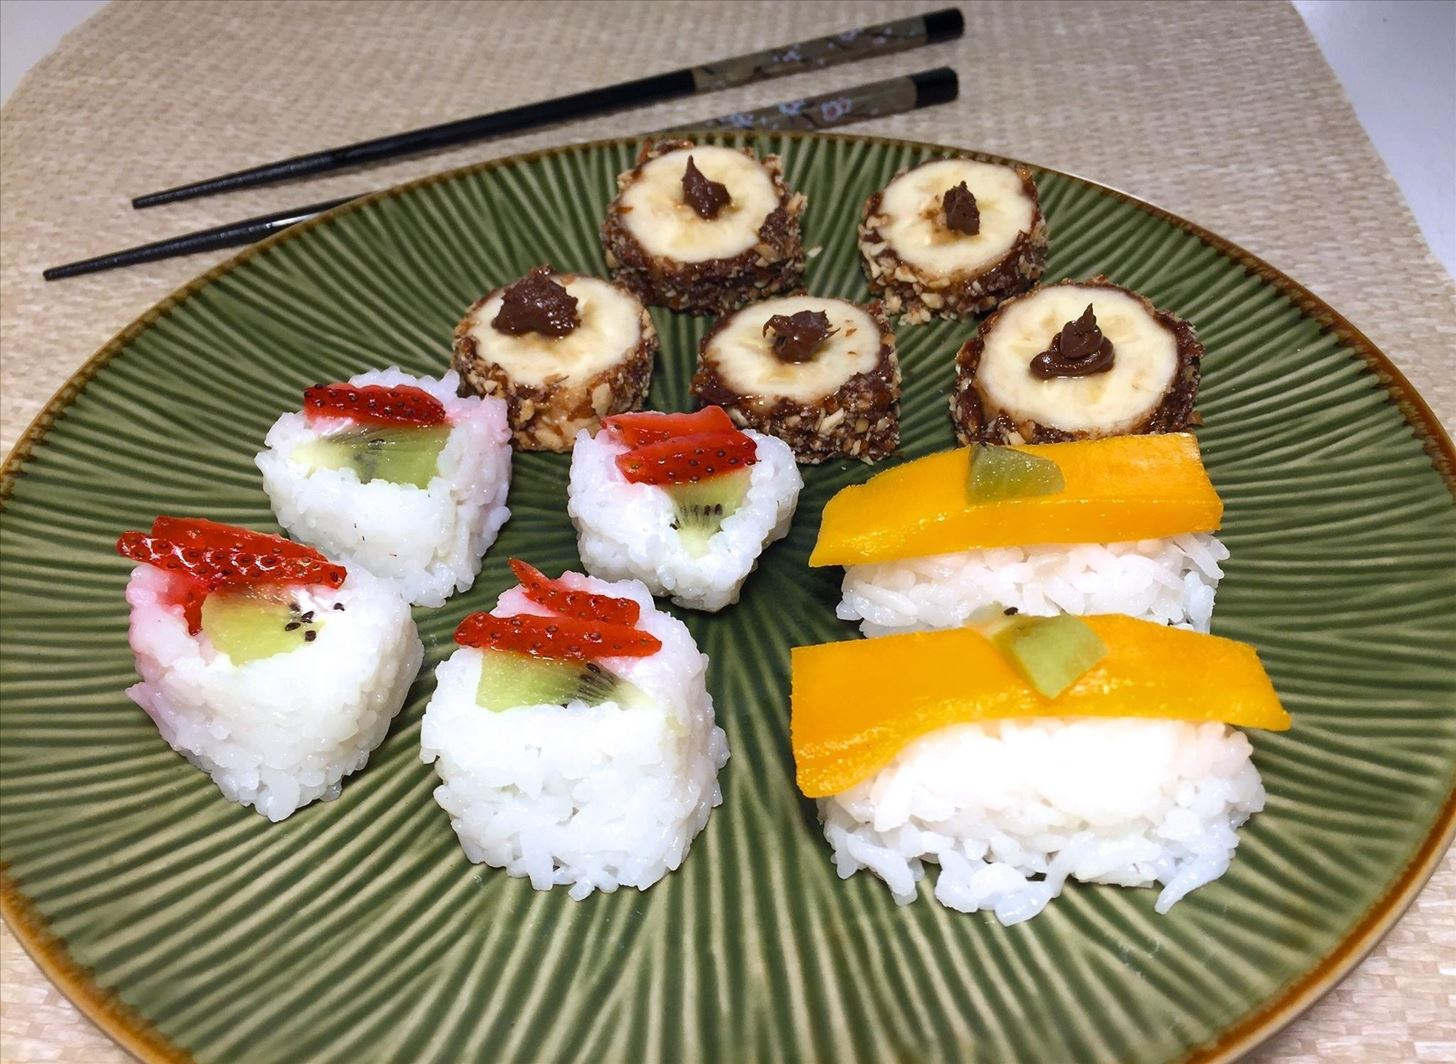 DIY Dessert Sushi: 3 Irresistible, Easy-to-Make Recipes